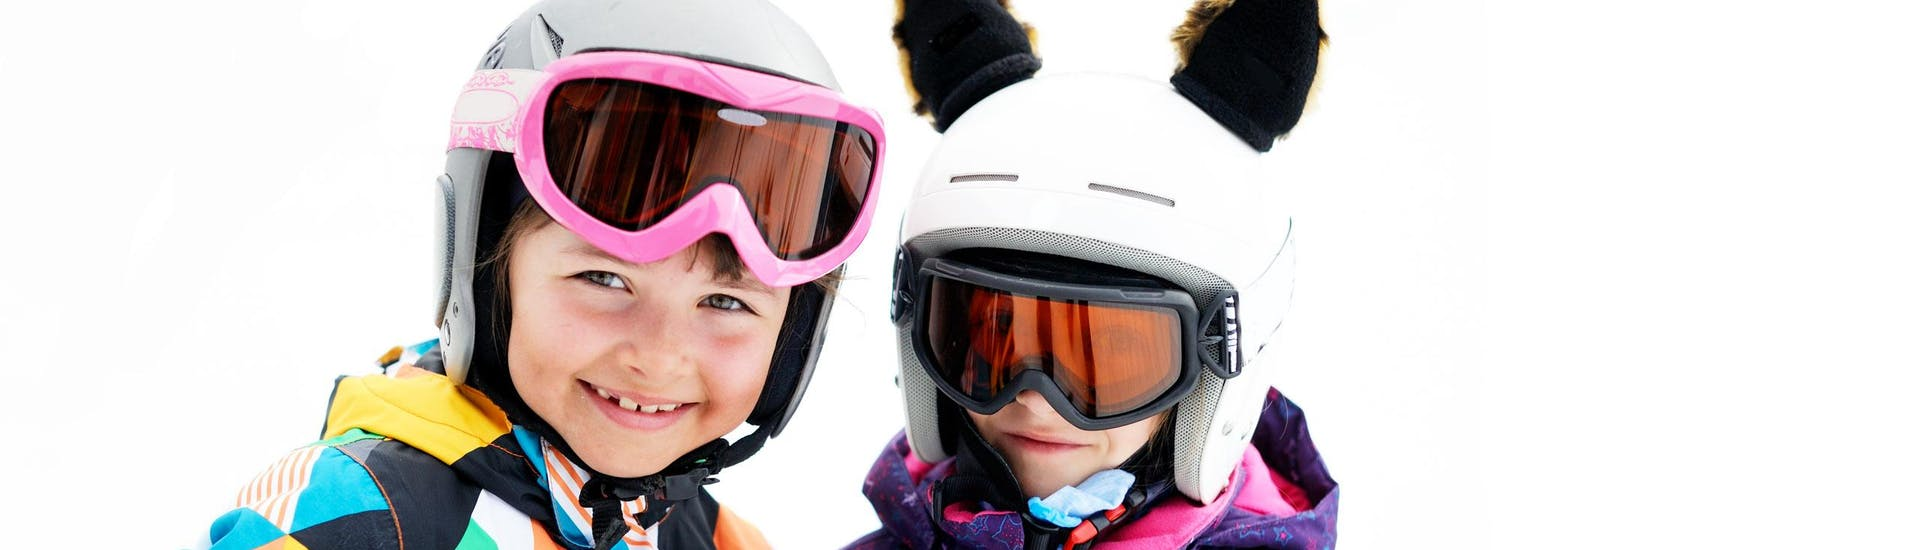 Two young children smiling at the camera during one of the Kids Ski Lessons for Advanced Skiers (from 4 y) - Hochfügen organised by Ski School Total Fügen Hochfügen.